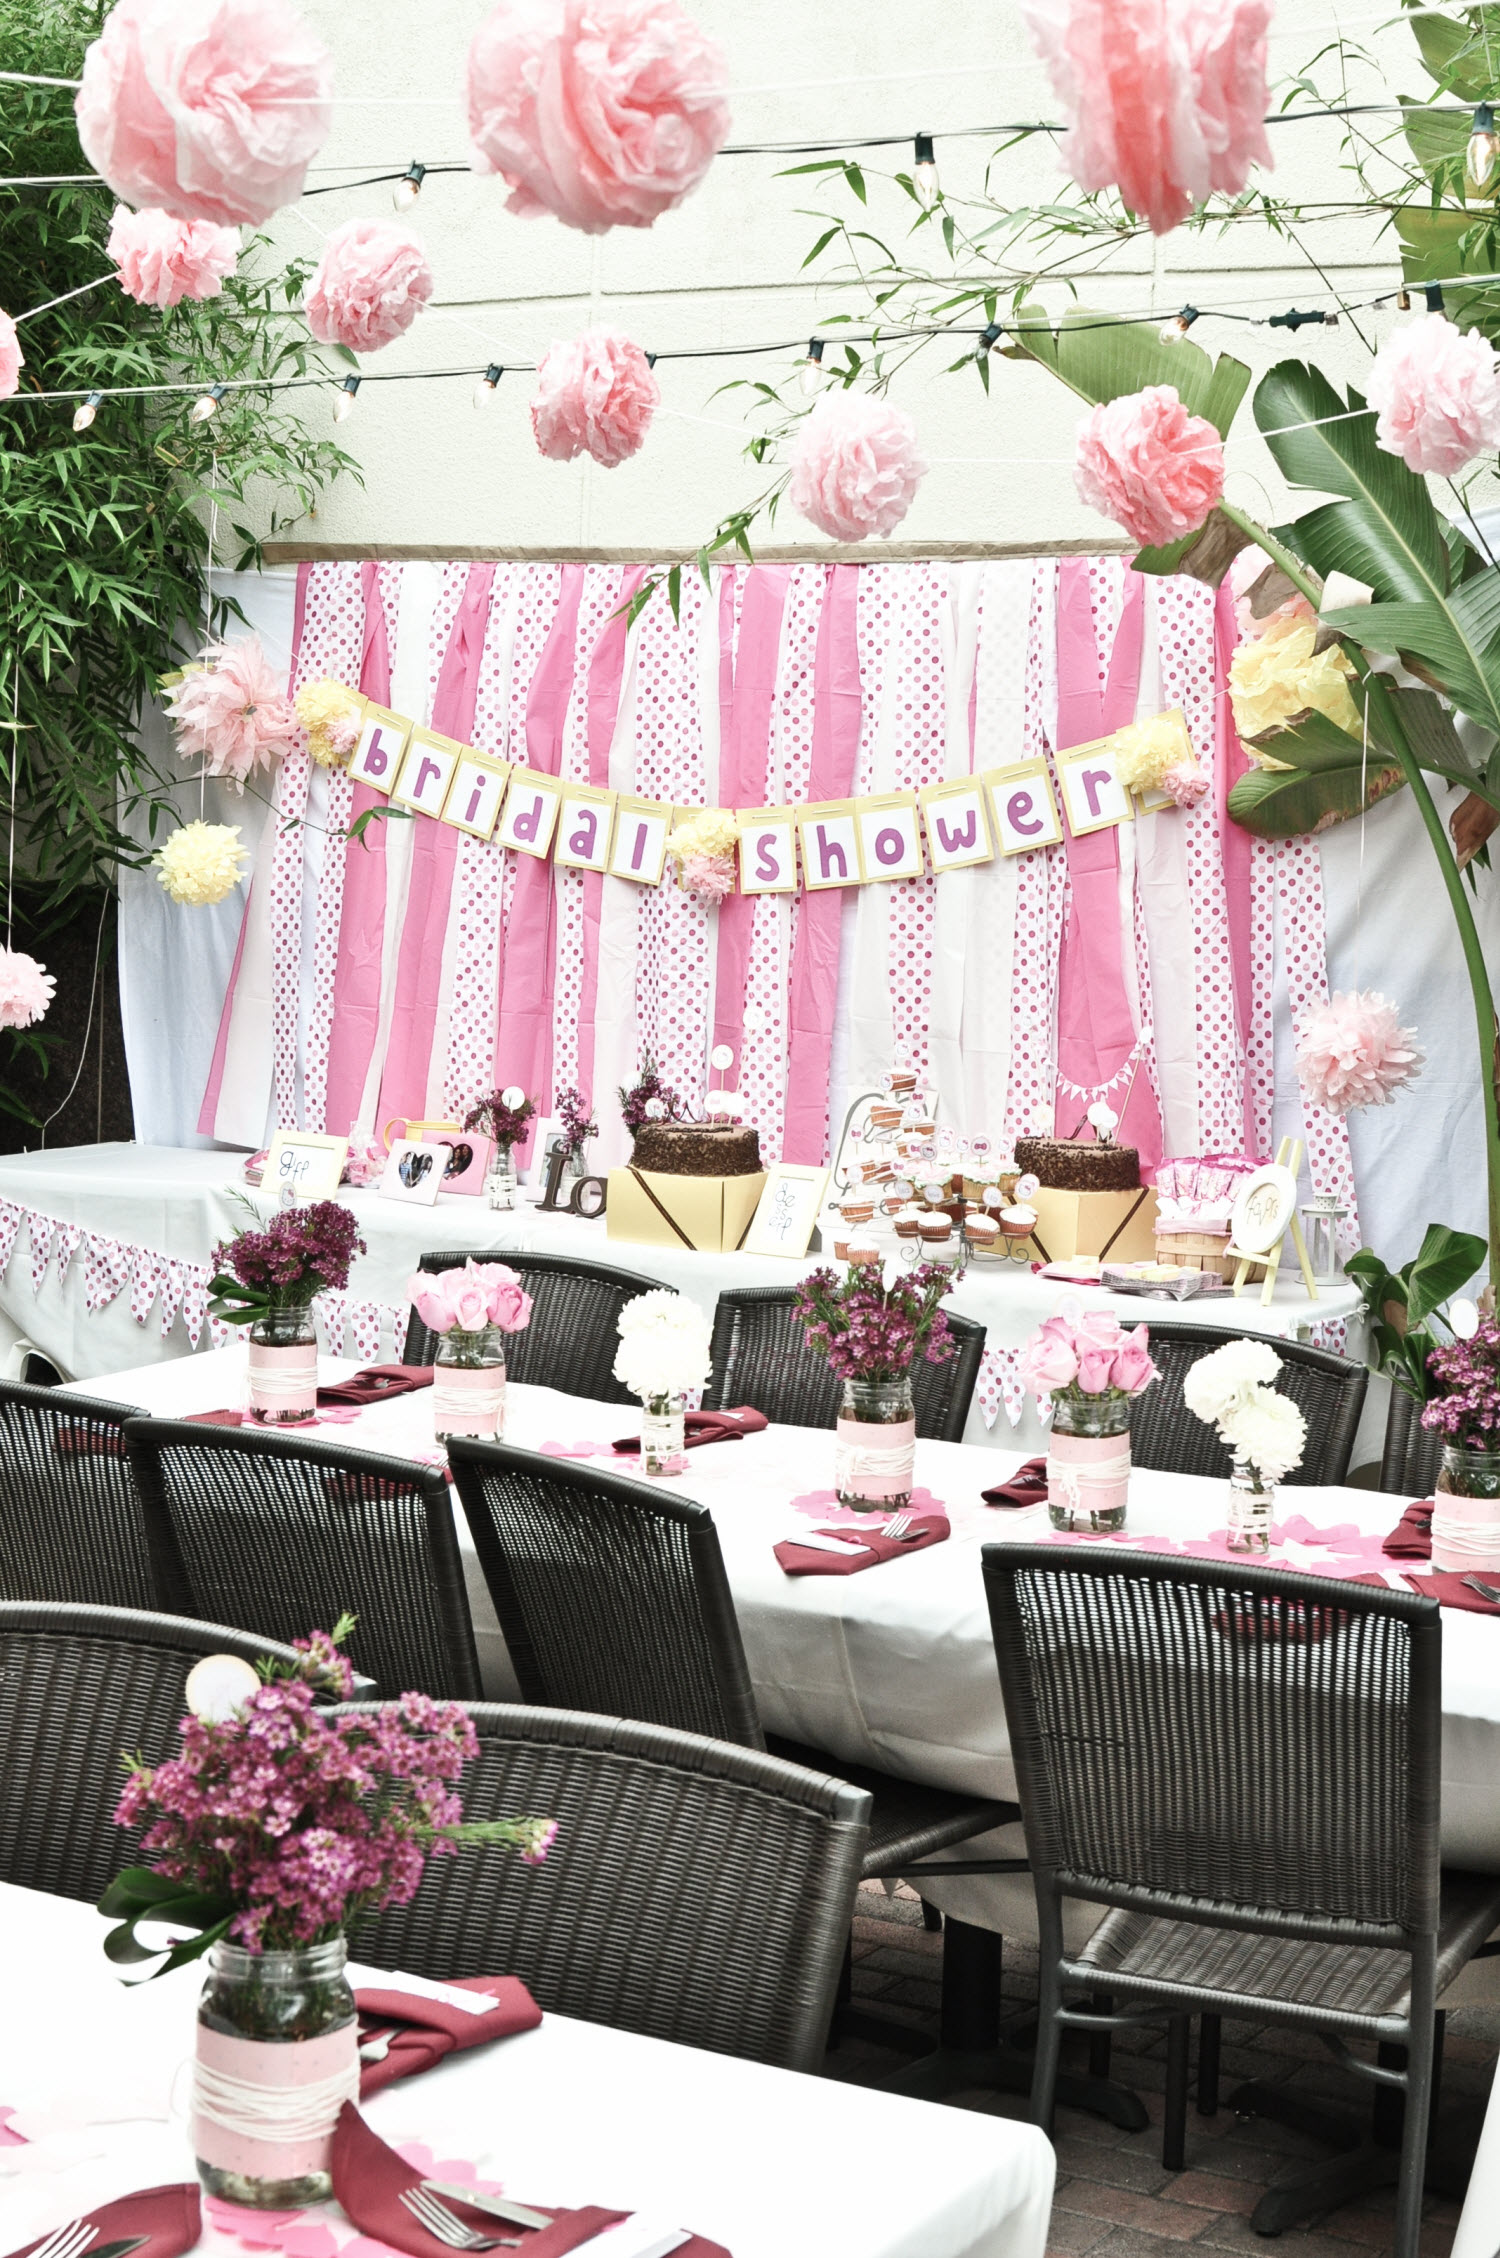 kimberly ideas party paulajw tea pinterest images best on wedding s garden shower showers bridal